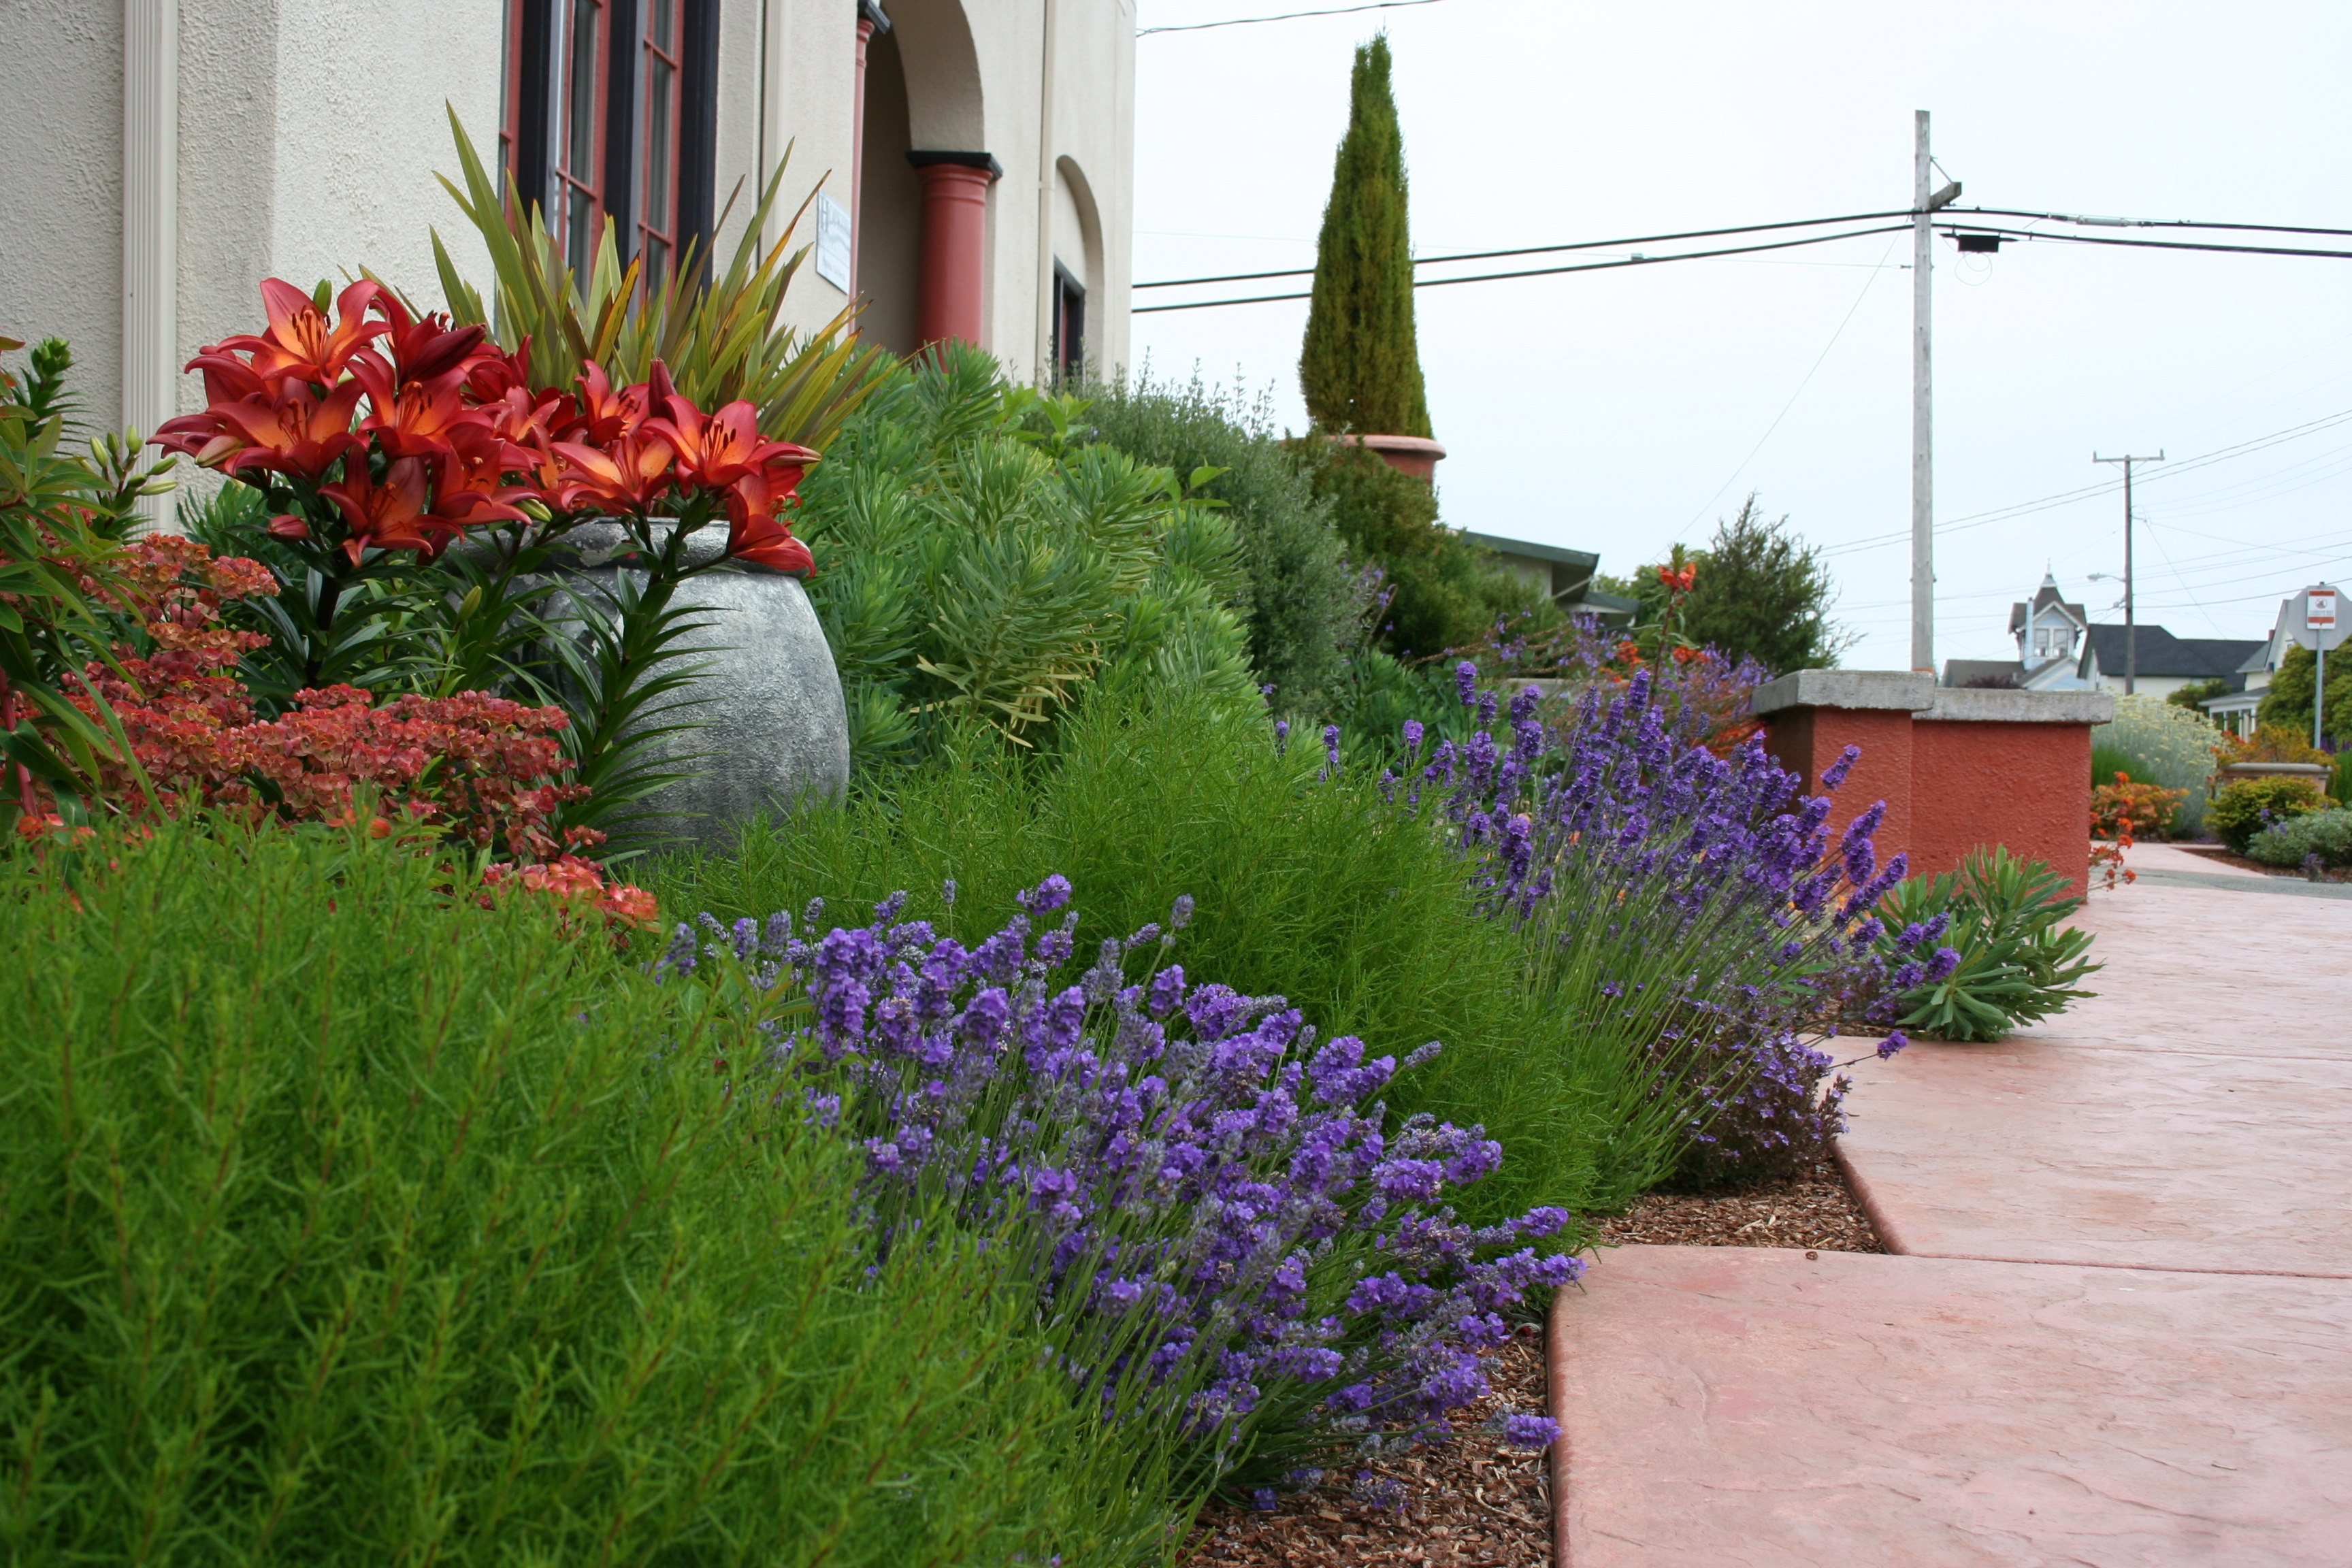 Mediterranean garden design how to create a tuscan garden for New zealand garden designs ideas